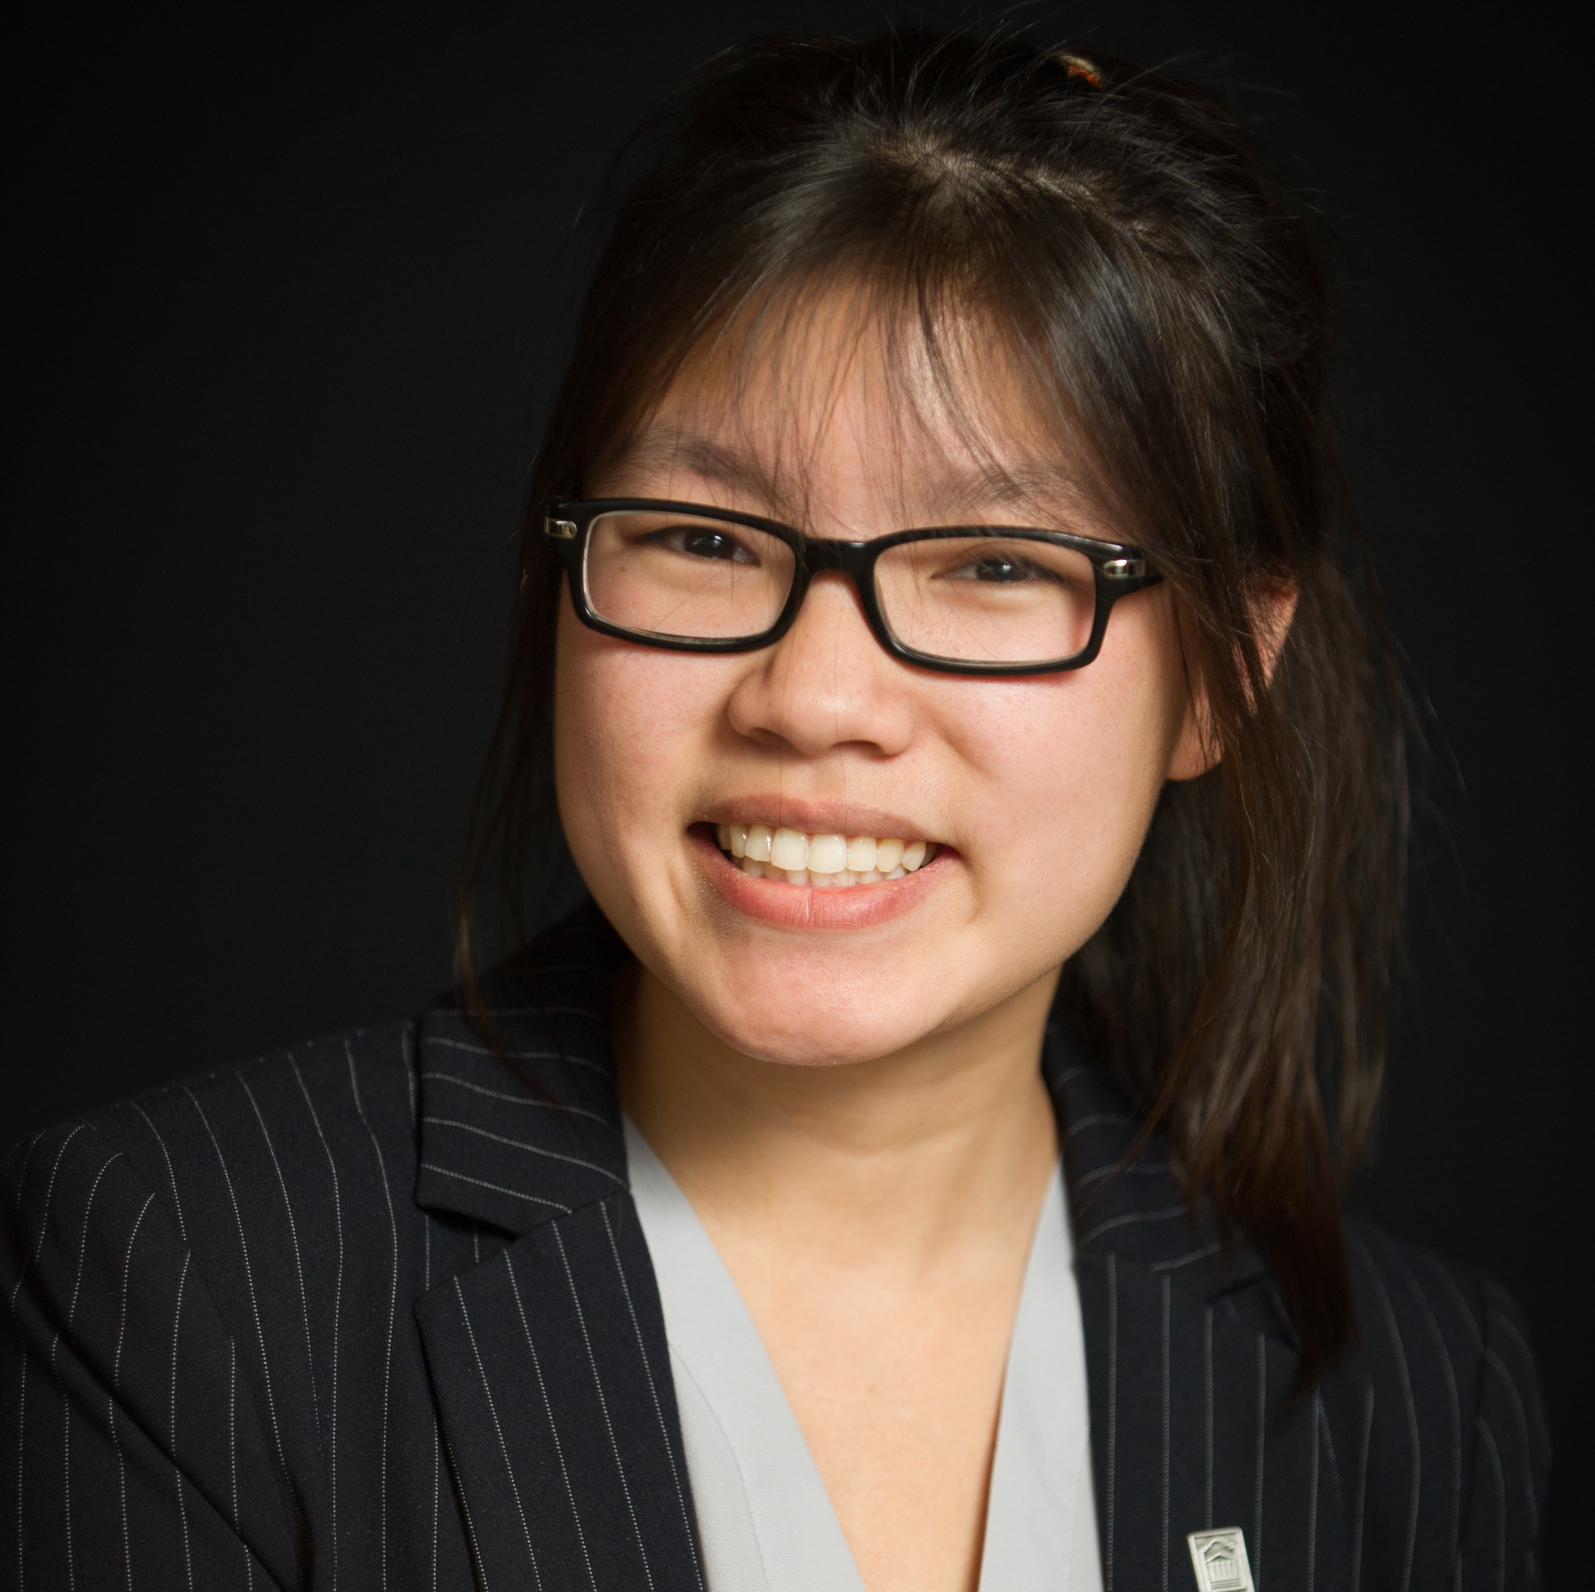 CO-OP Student of the year - Telfer School of Management - Brenda Lam